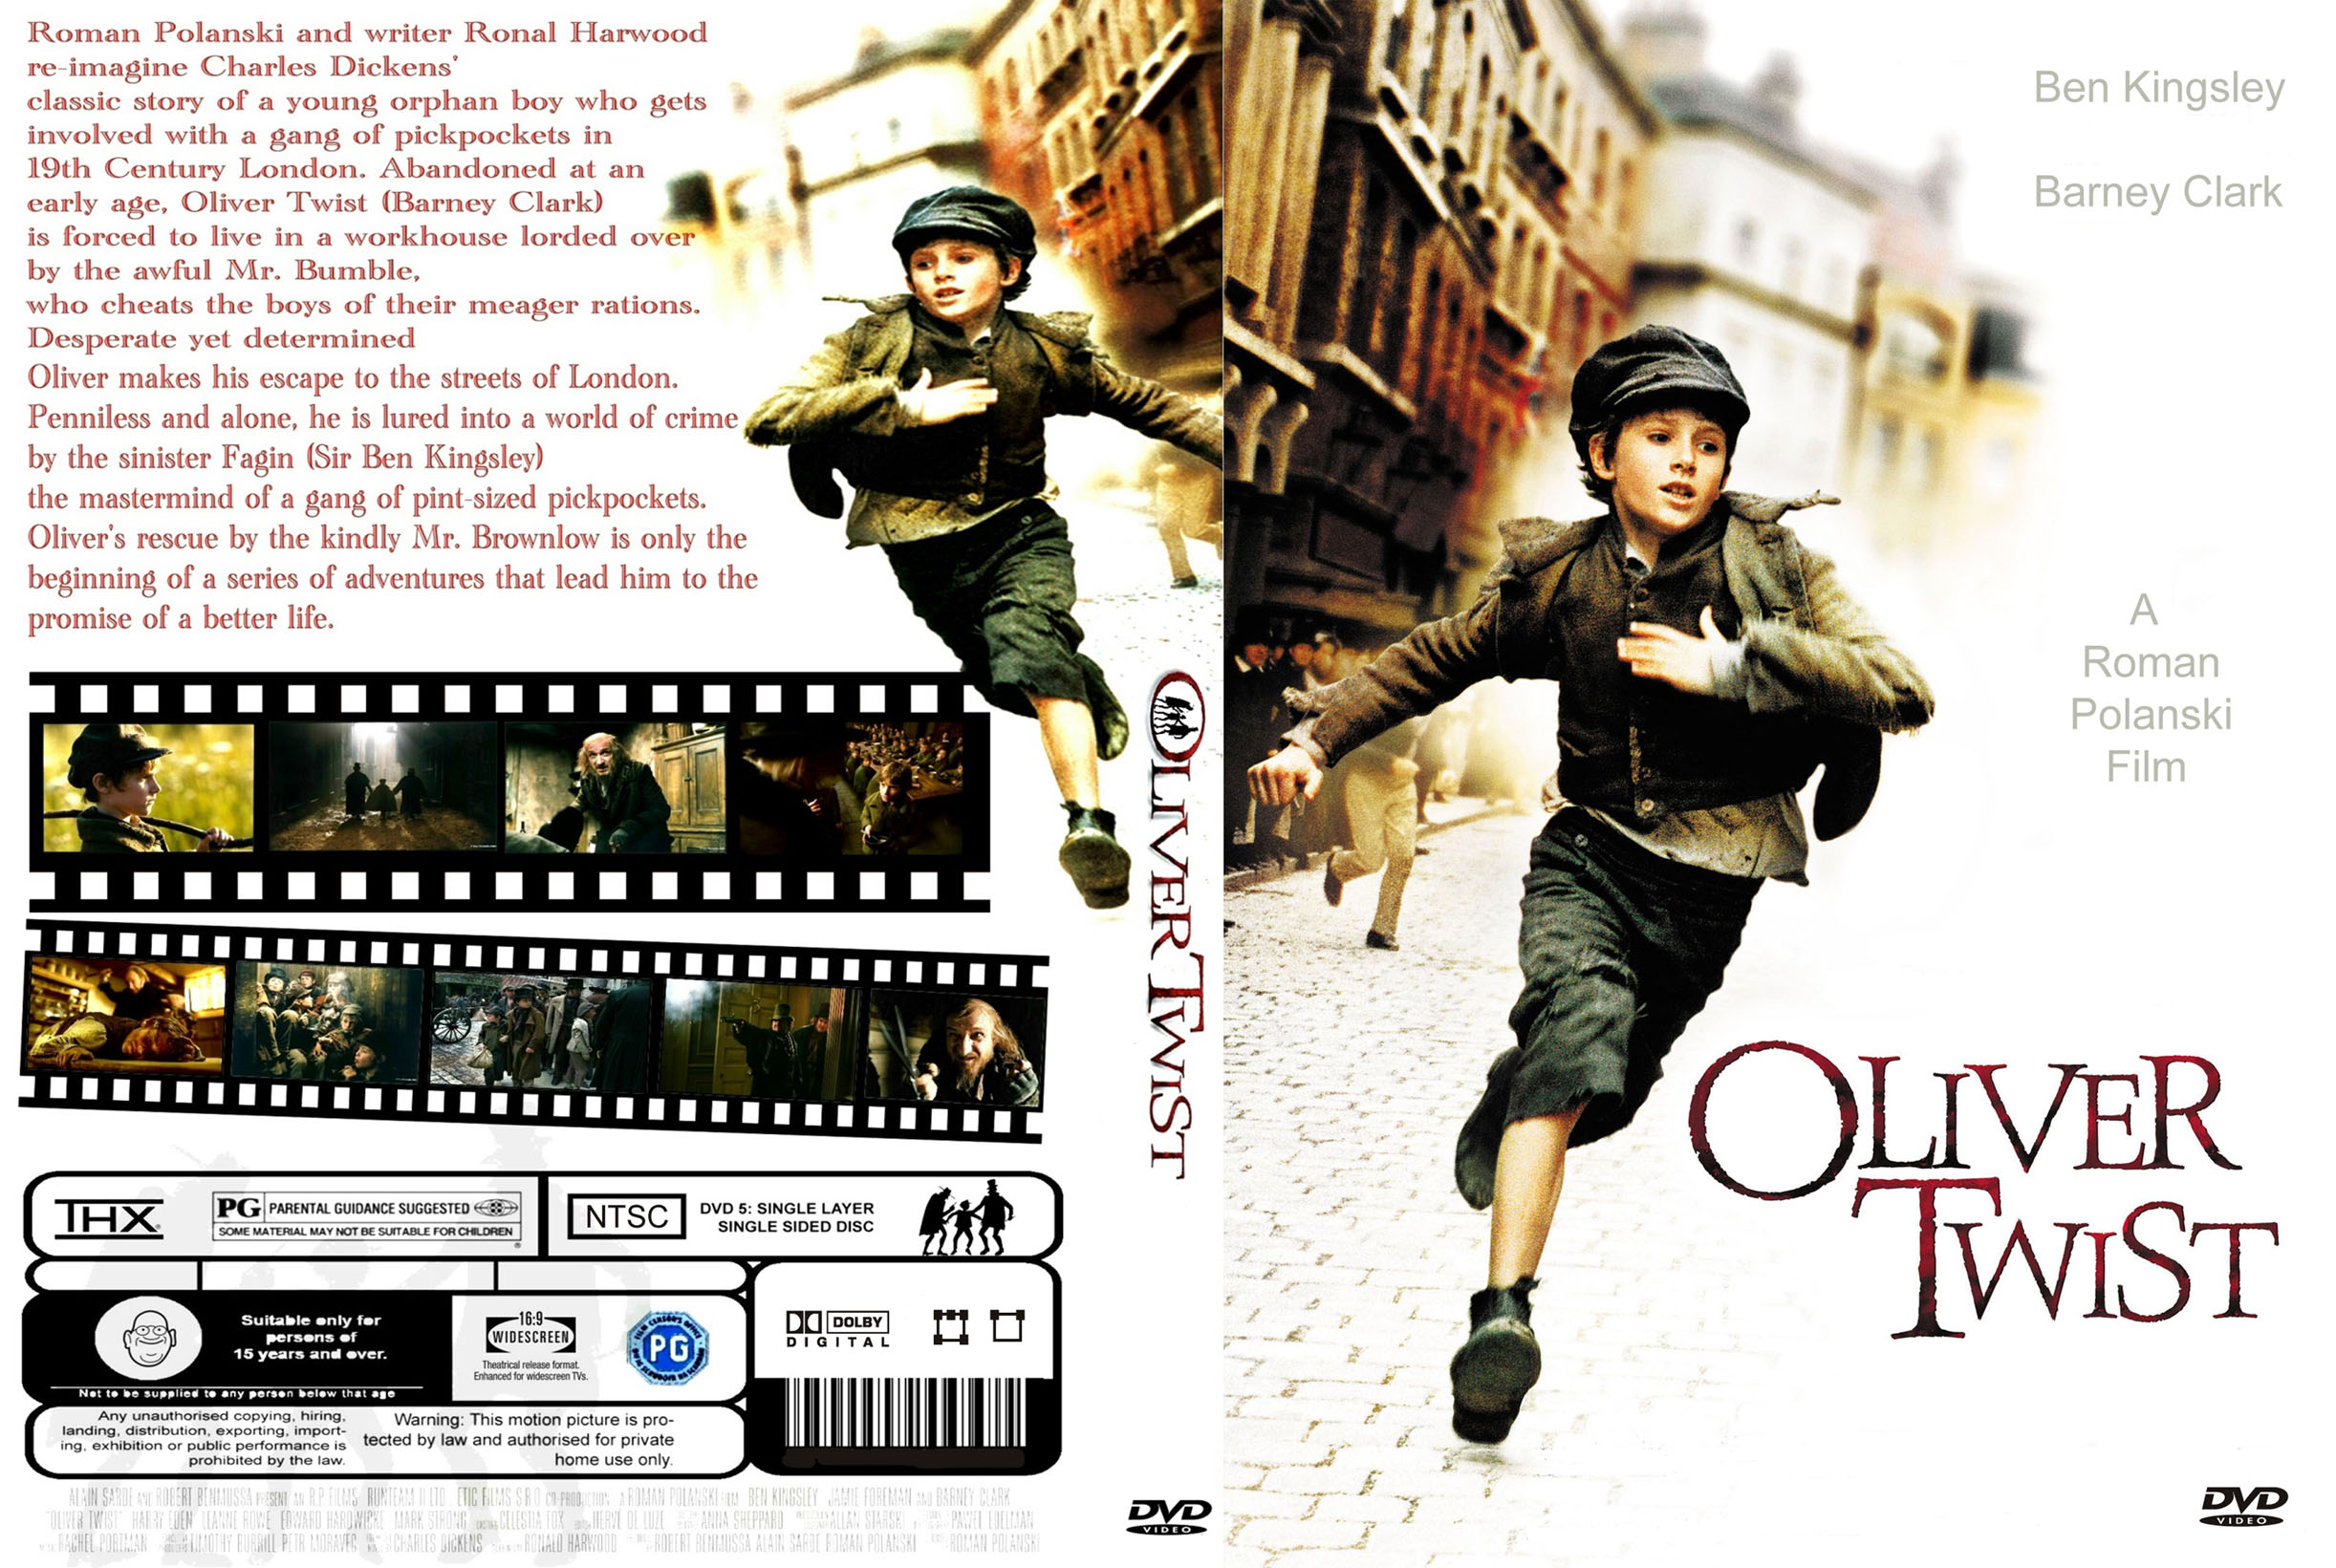 a summary of the difficult childhood of oliver in charles dickens novel oliver twist Roman polanski, a fugitive from american justice, has recently released his much-anticipated adaptation of charles dickens's second novel, oliver twist this project has aroused a great deal of interest over the past few years for two reasons the first was perhaps the most obvious: why bother.